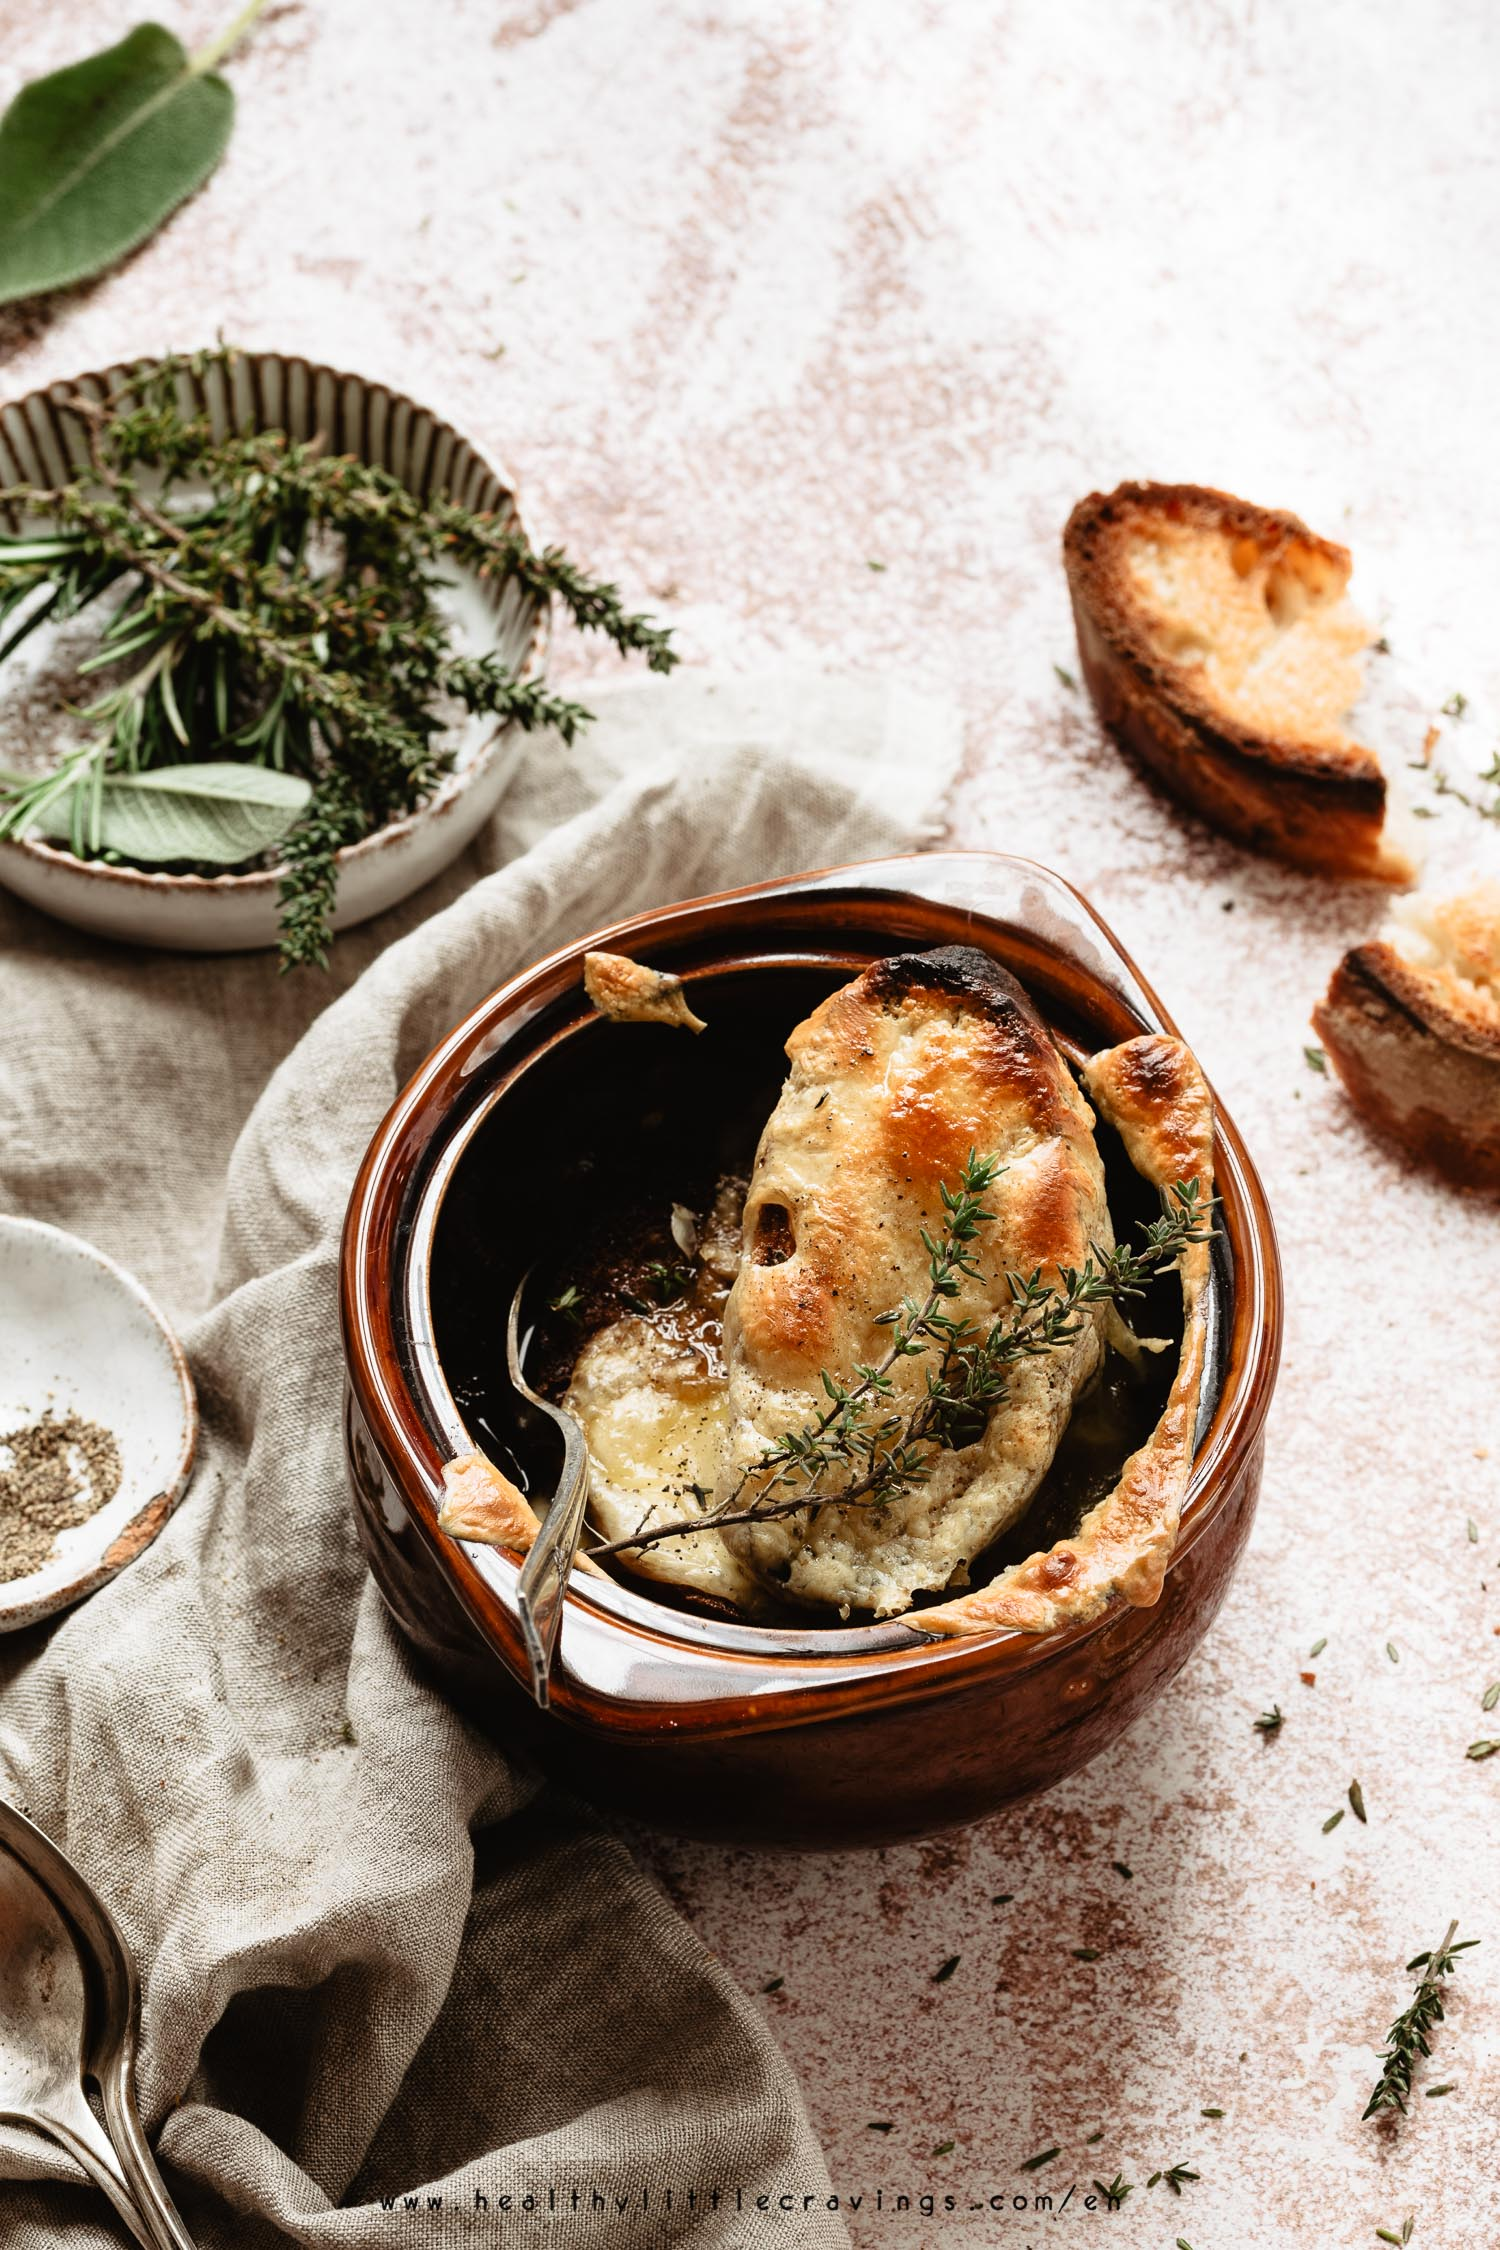 A delicious vegetarian french onion soup into a cocotte